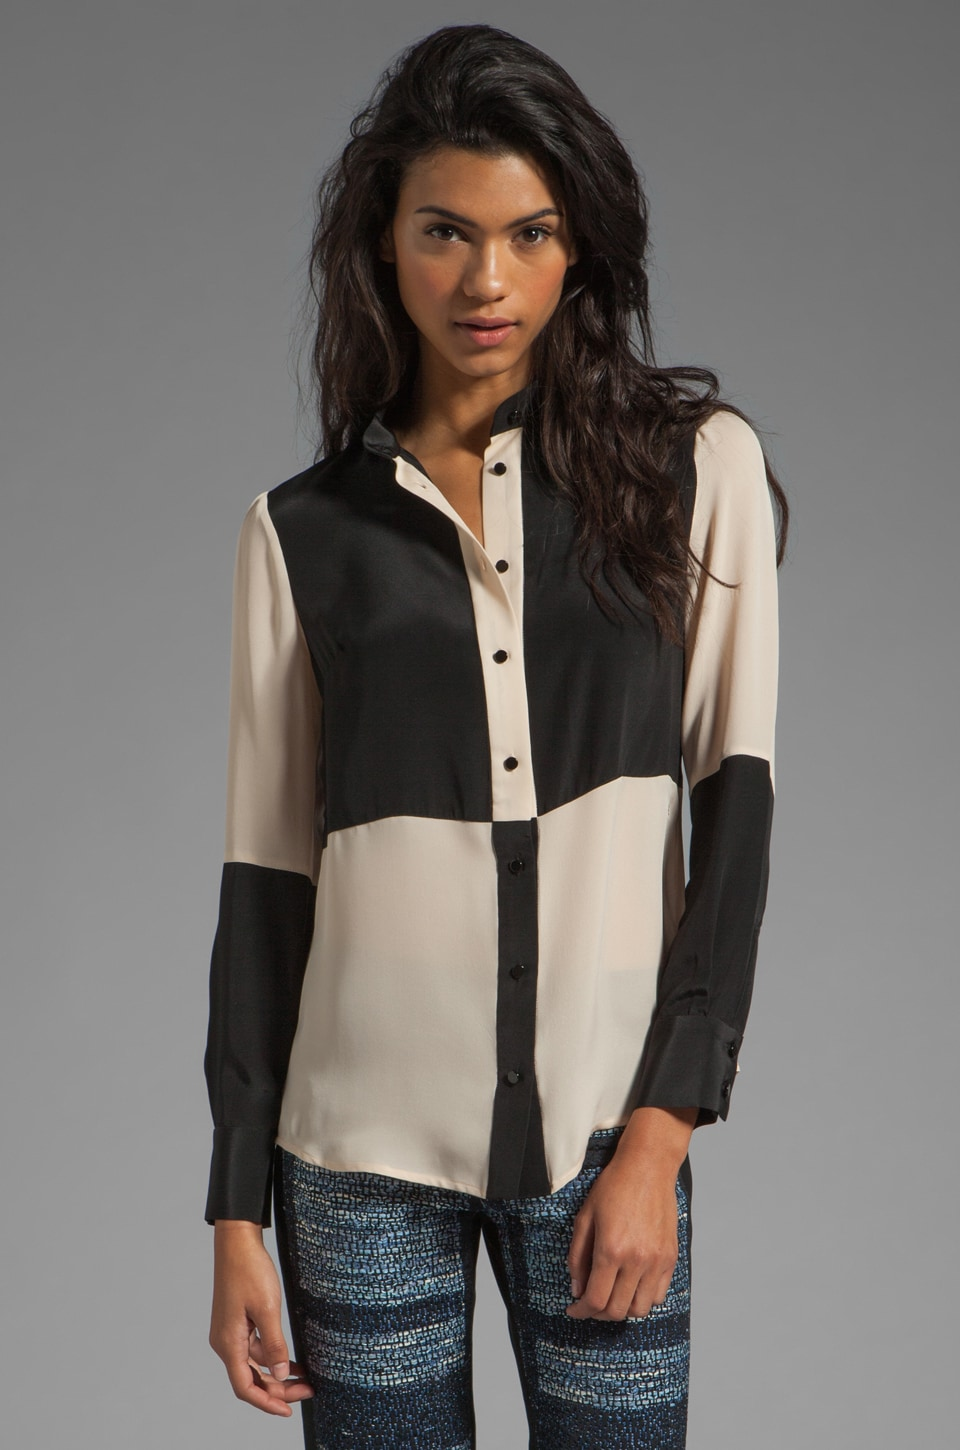 DEREK LAM 10 CROSBY Mandarin Collar Shirt in Black/Nude